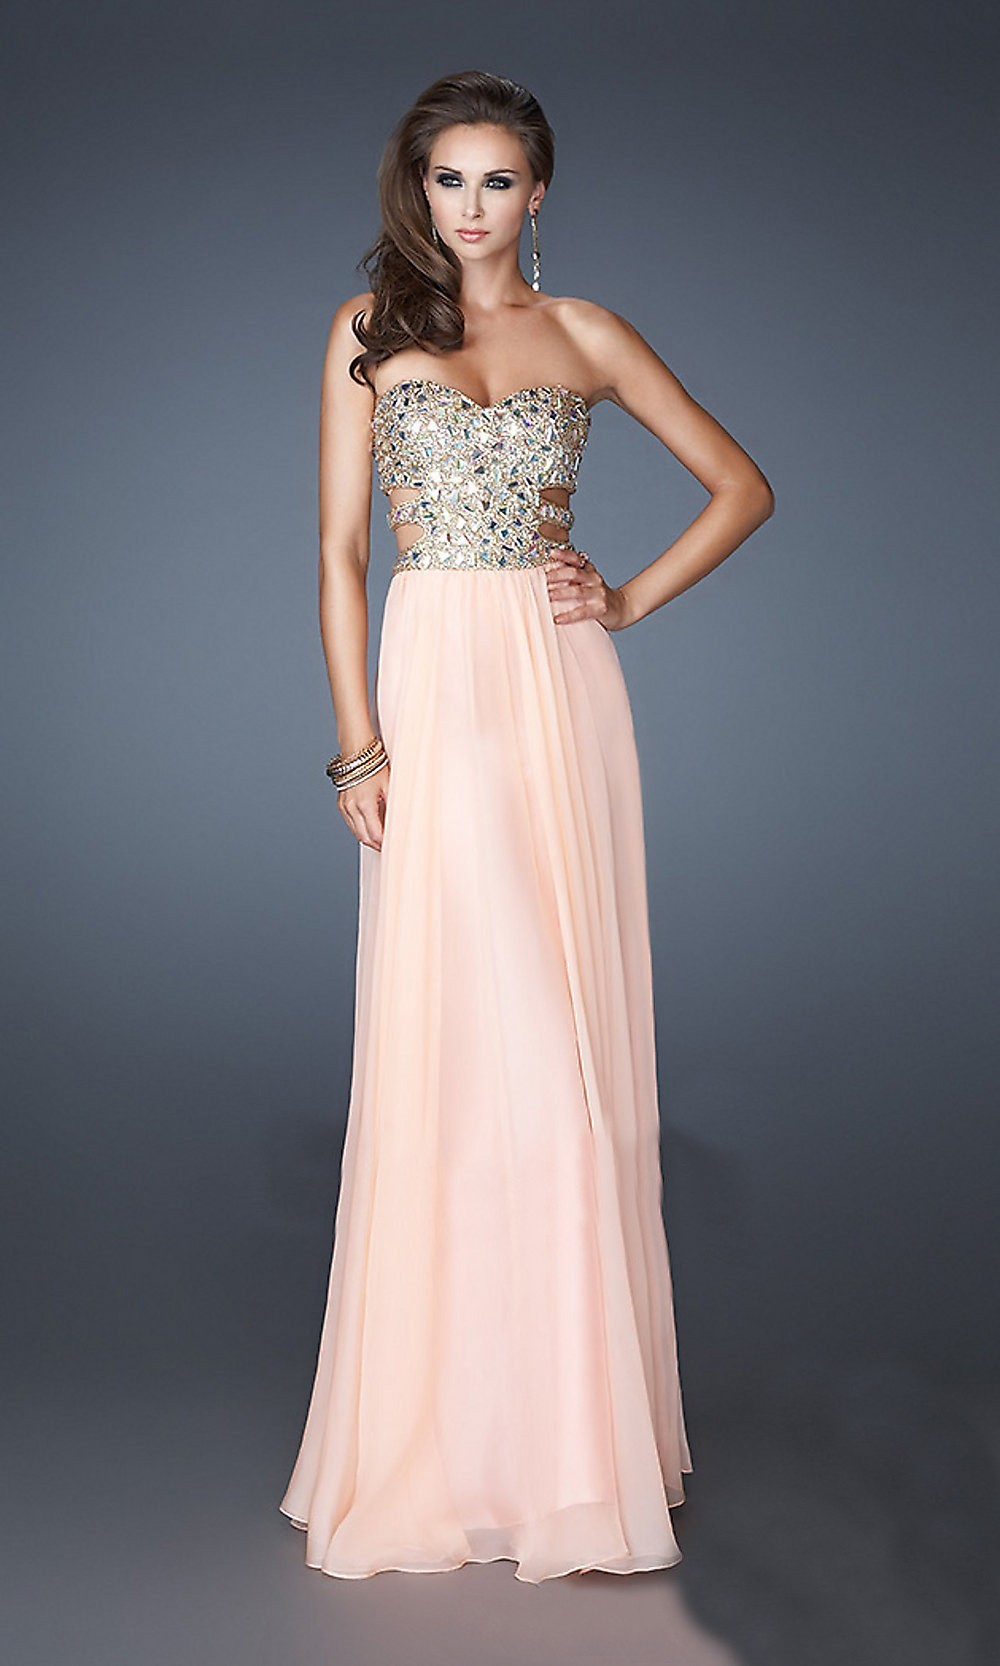 $145.00 Cheap Amazing A-Line/Princess Sweetheart Sleeveless Rhinestone Floor-Length Chiffon Dress absa-5731 - absasa.com